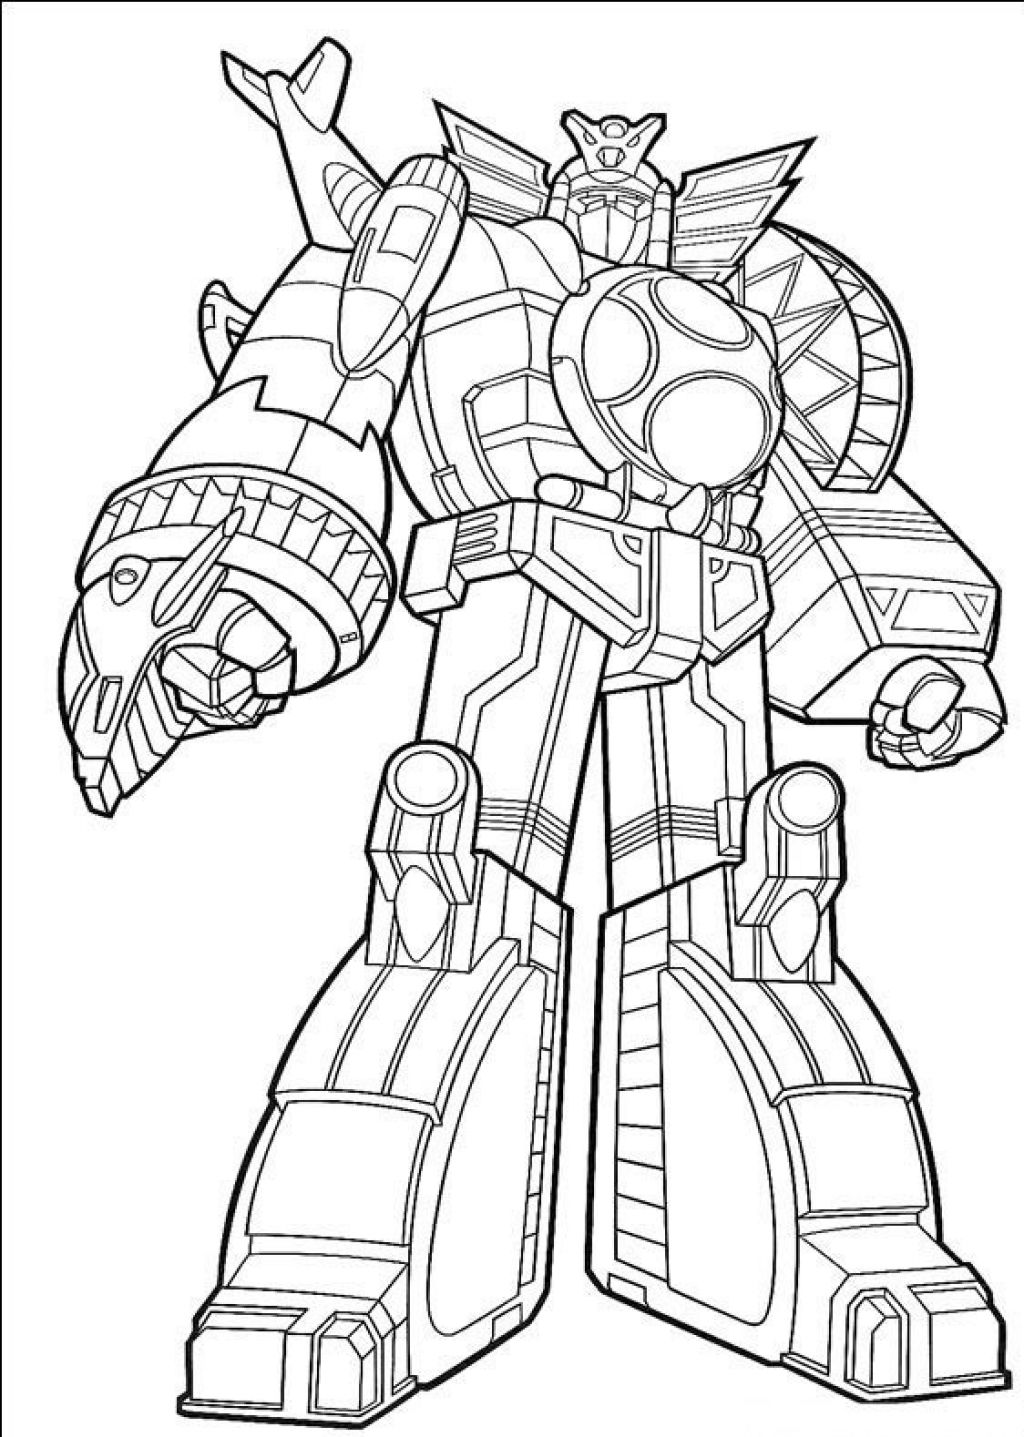 power rangers color pages kids page power rangers coloring pages pages rangers color power